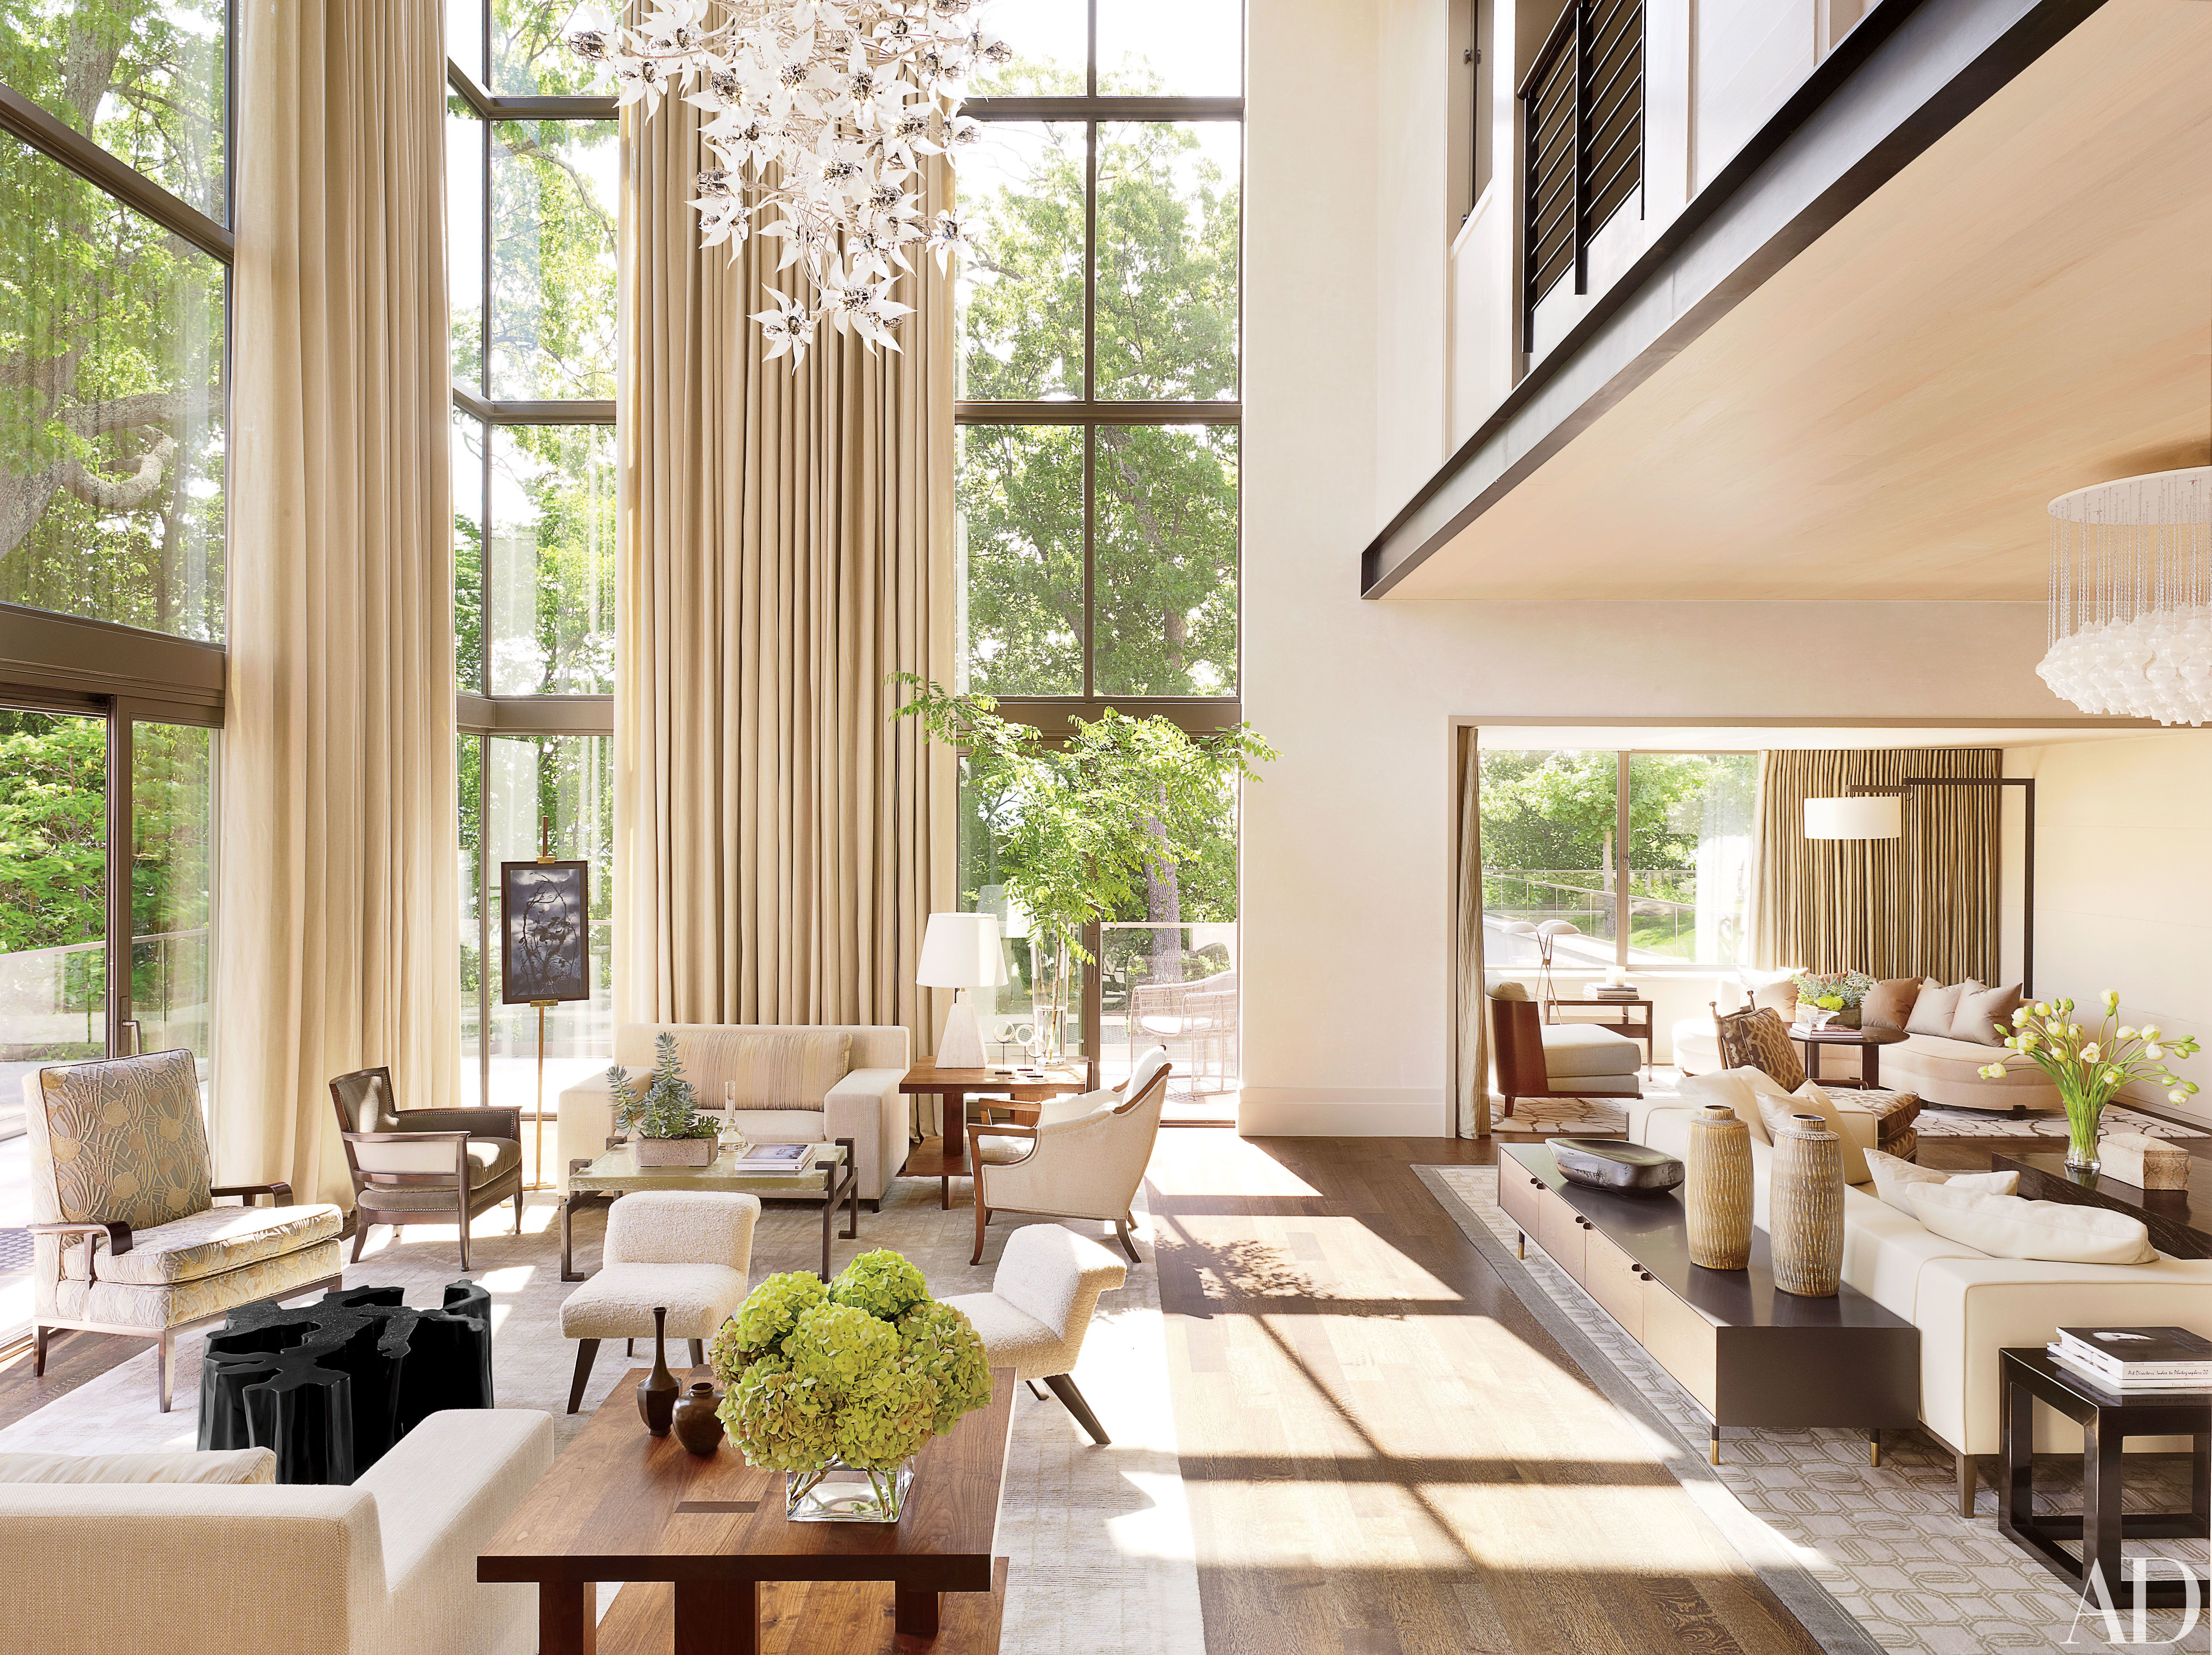 19 Gorgeous Rooms with DoubleHeight Ceilings in 2019